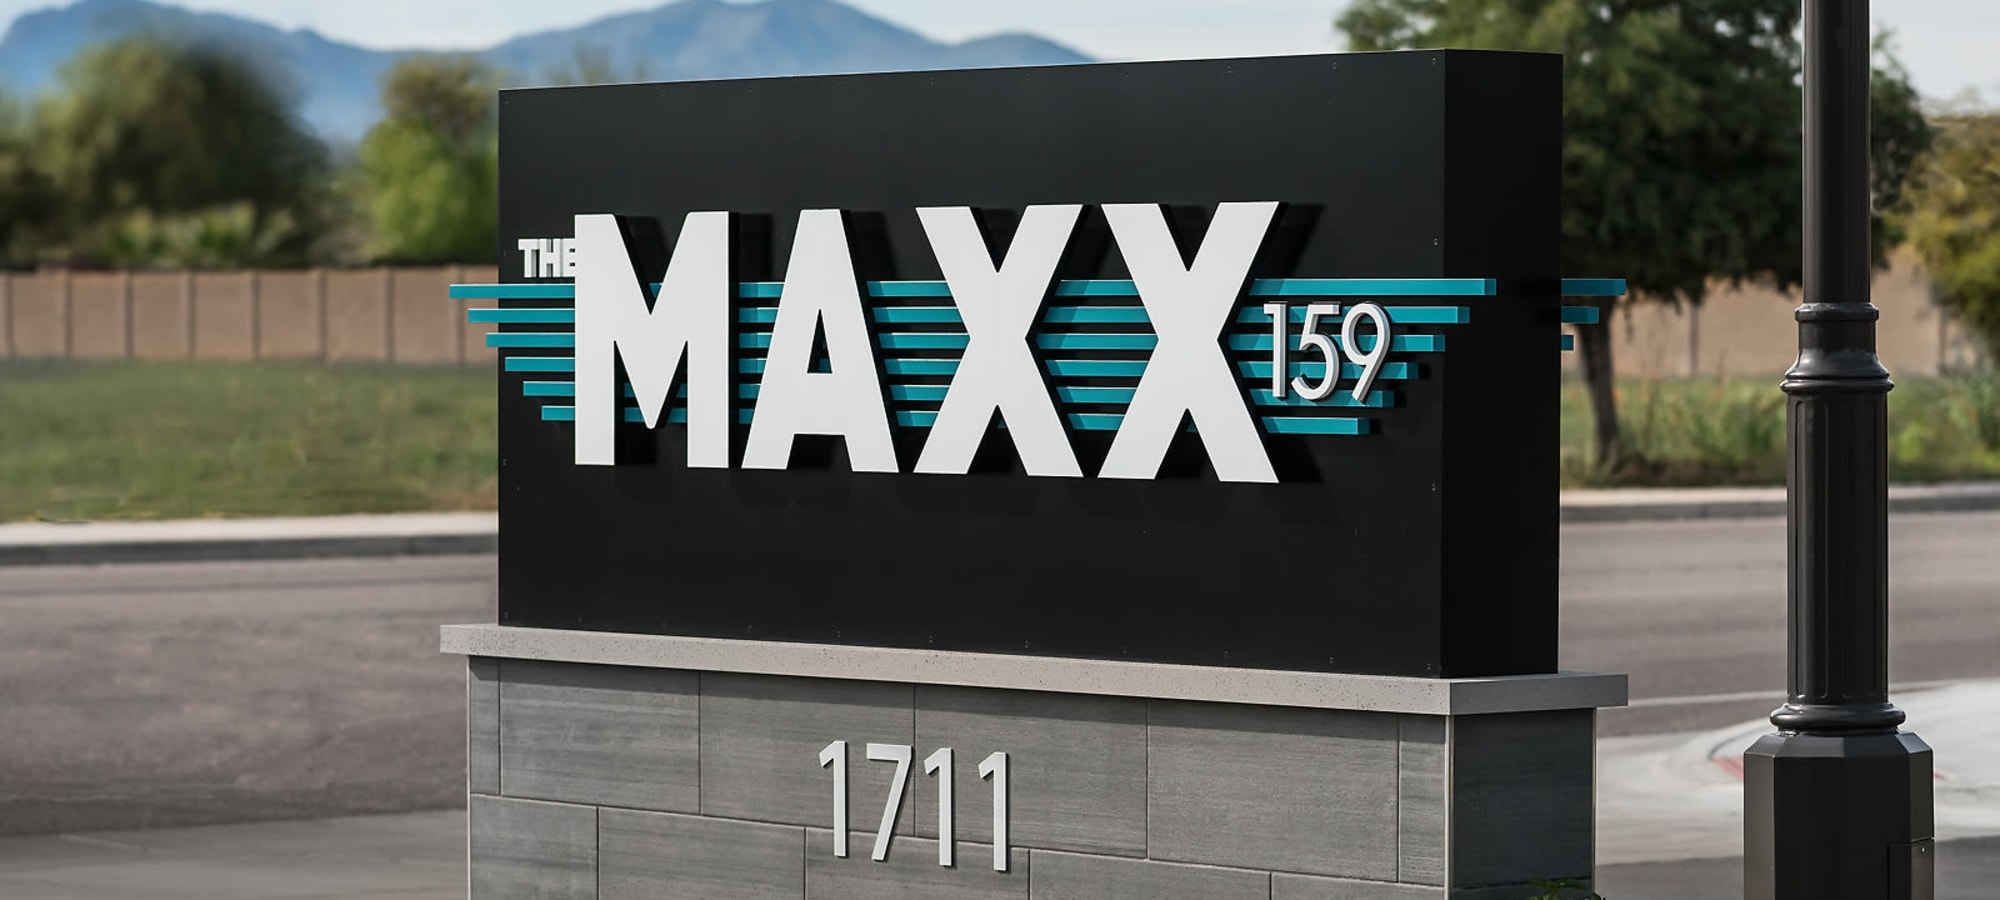 Entrance sign at The Maxx 159 in Goodyear, Arizona